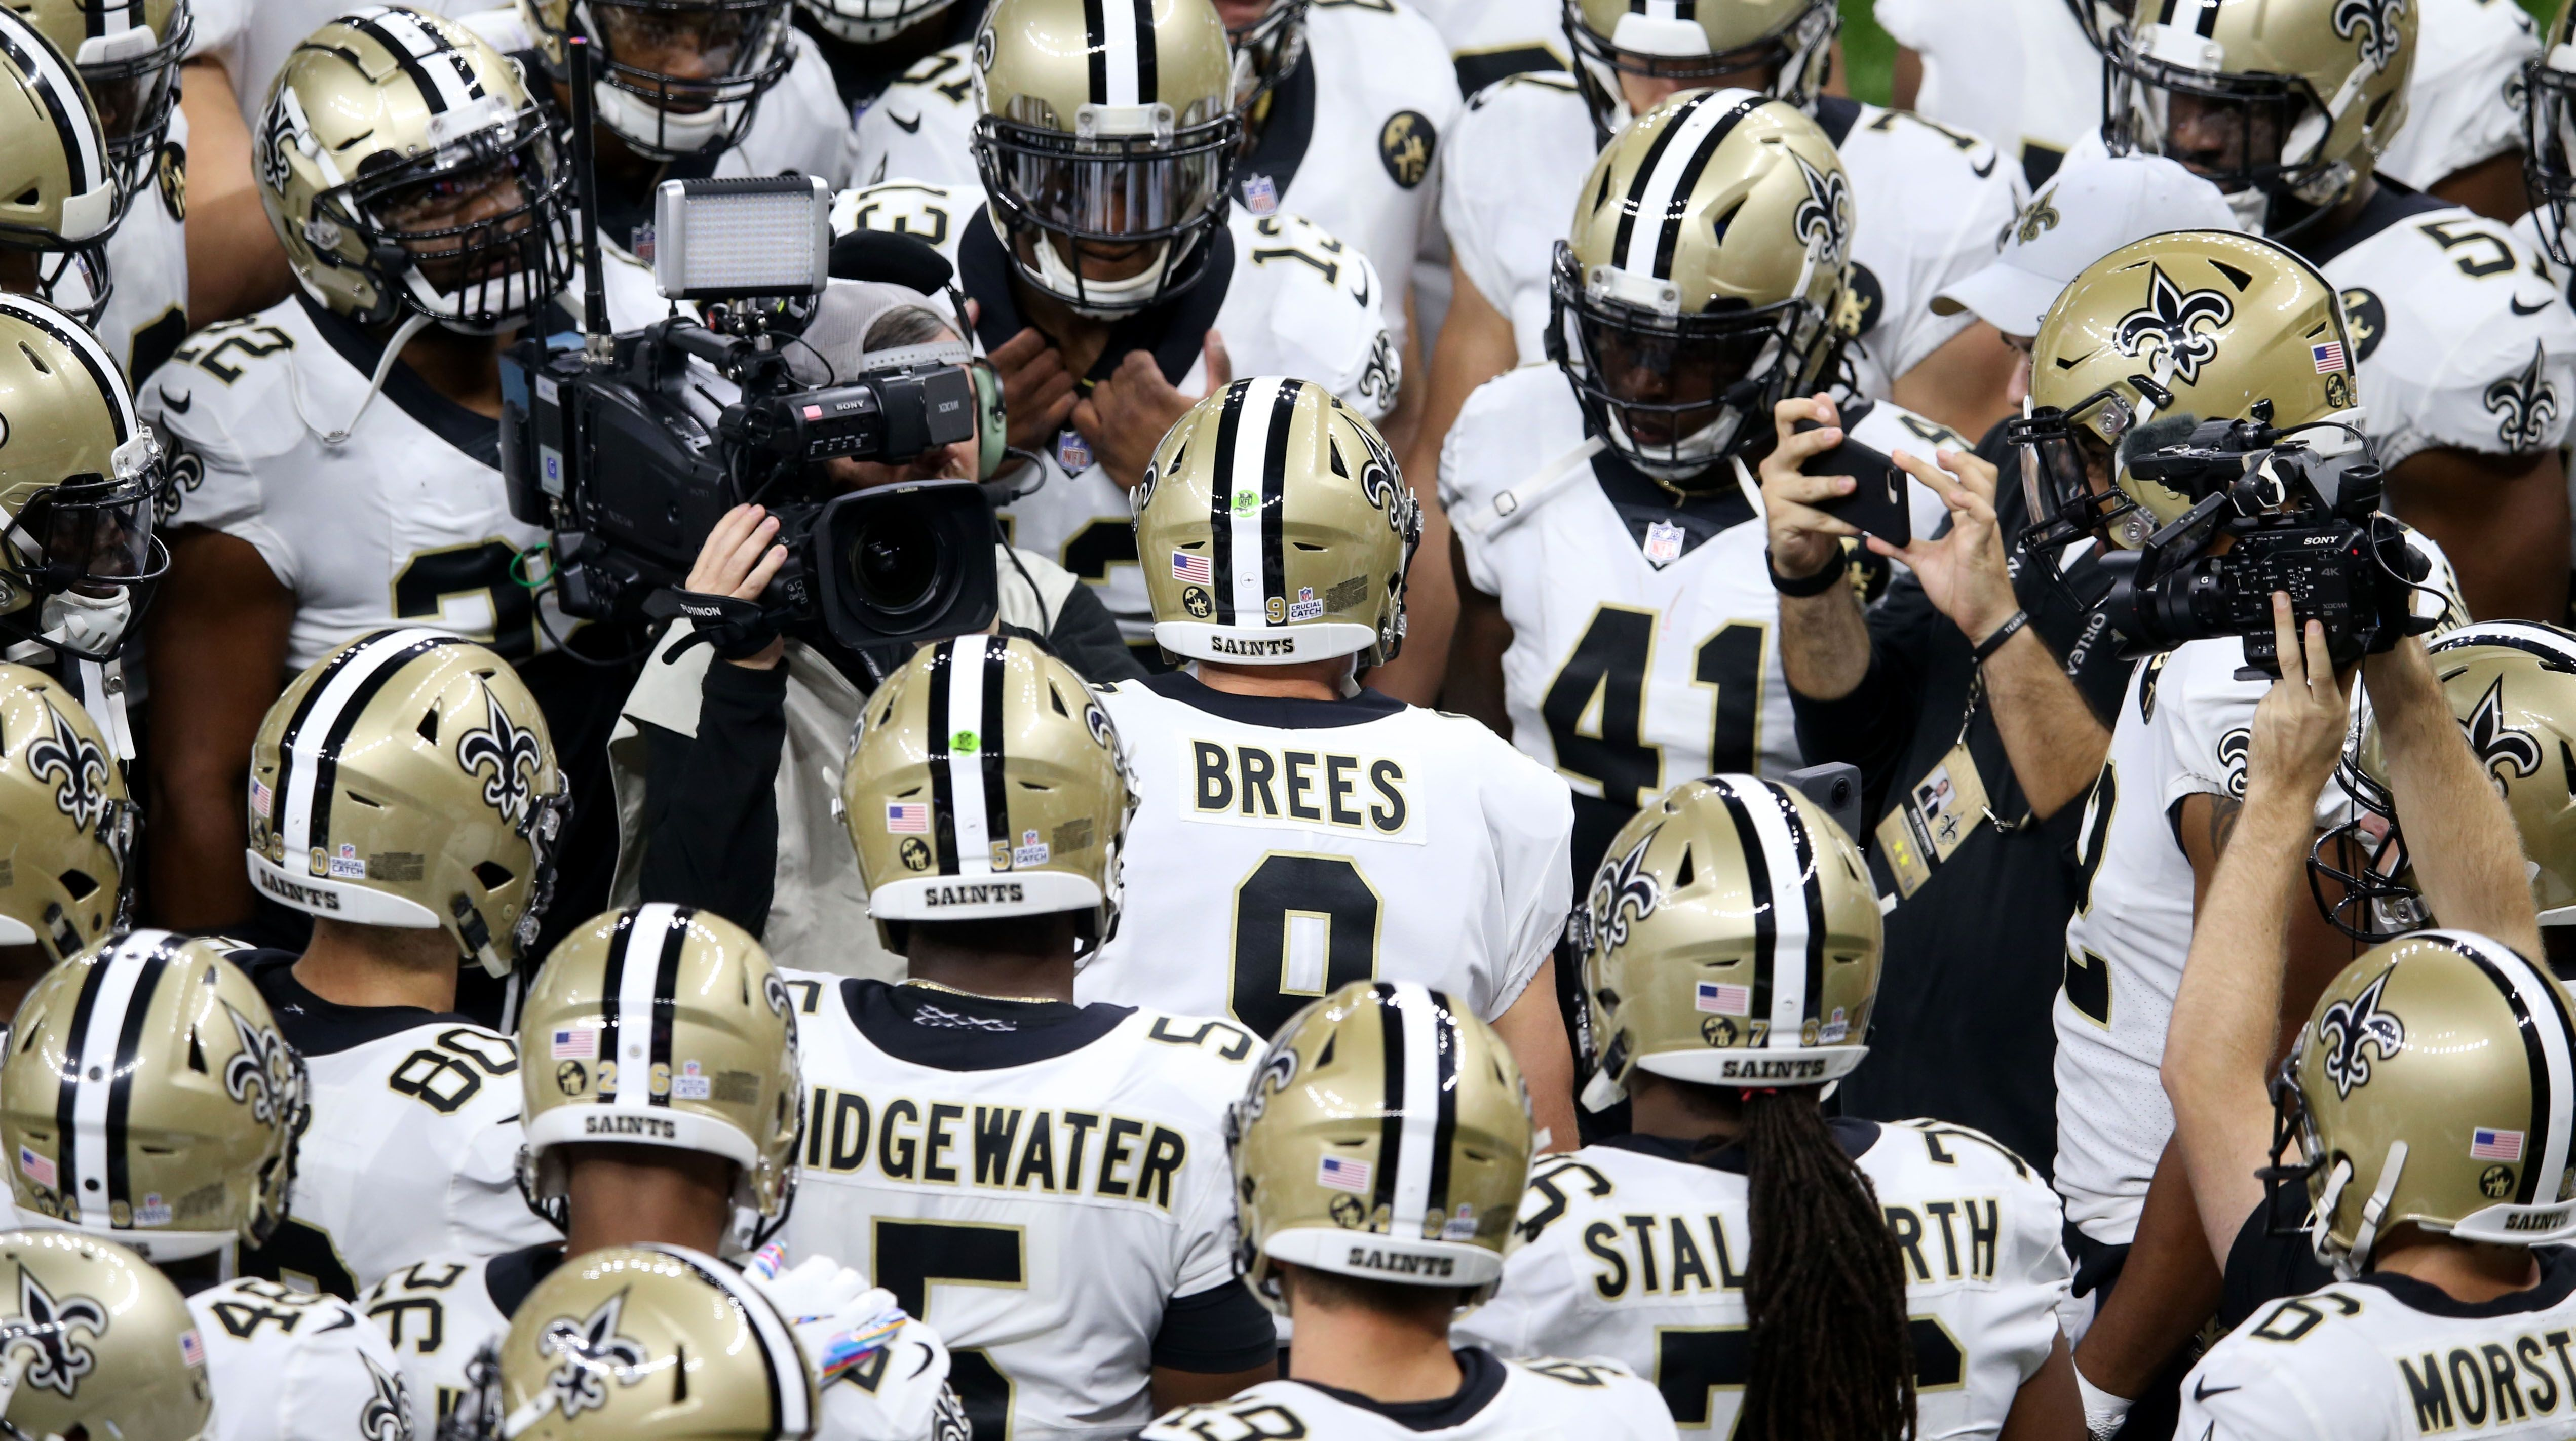 Why doesn't Saints quarterback Drew Brees get recognition he deserves?